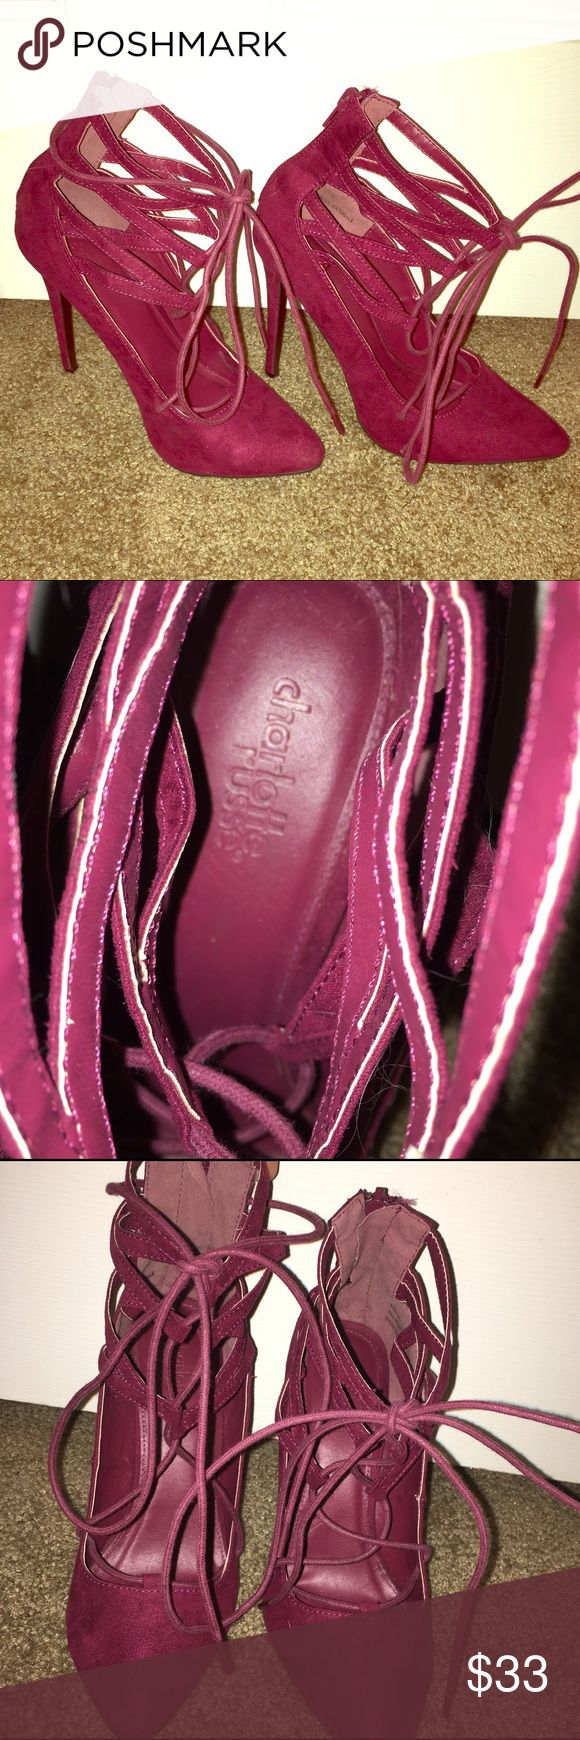 SALE  maroon pumps Pointy toe lace up maroon heels Approximately 4.5 inches Worn once to a dinner for maybe 2 hours total Actually super comfortable and easy to walk in! Stella style Charlotte Russe Shoes Heels